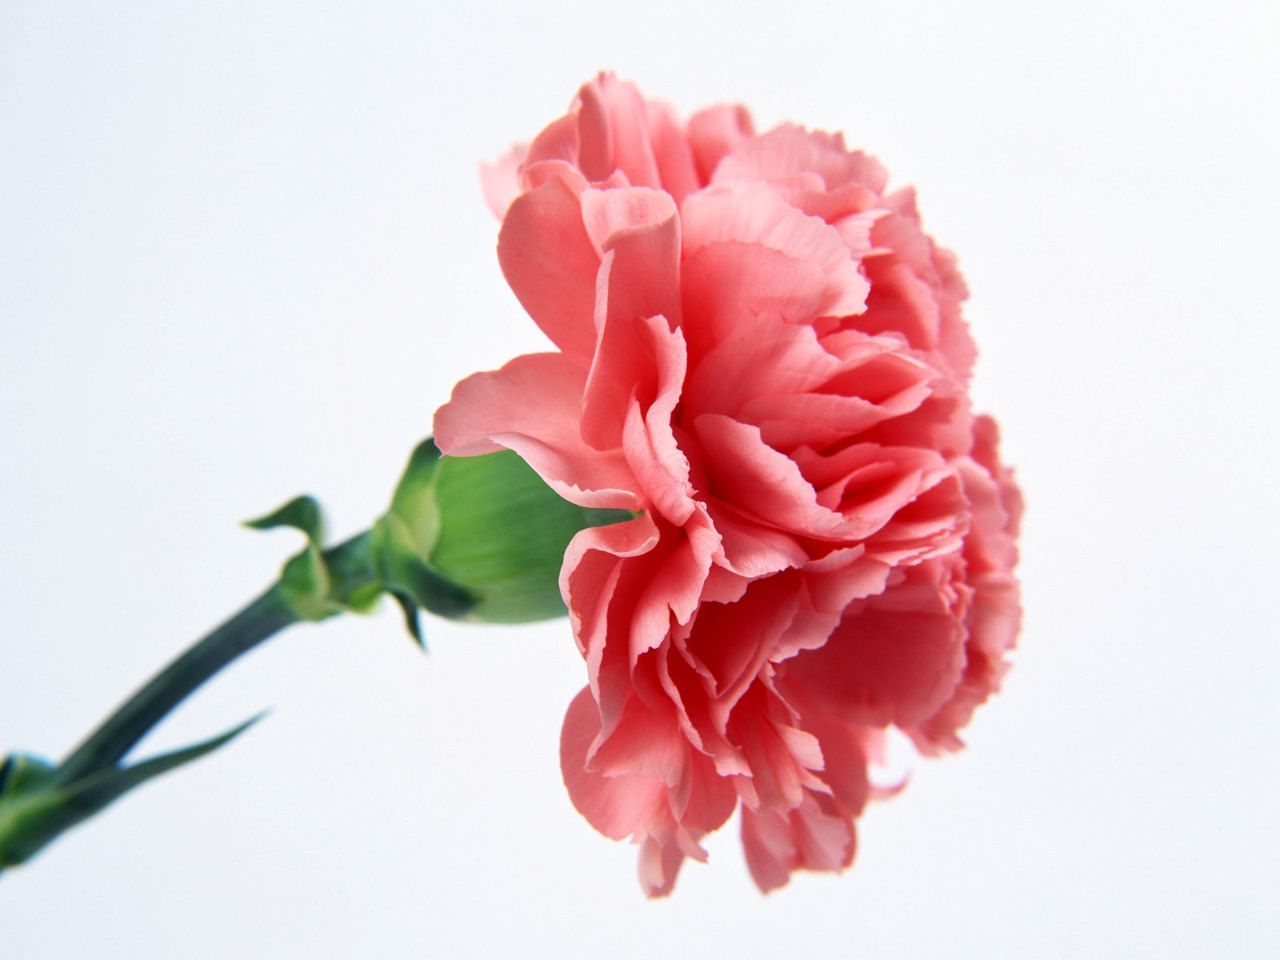 Fragrant And Beautiful Carnation Flowers Have Become Symbolic Of Mother S Love And Also Mothers Day Descrip Carnation Flower Carnation Plants Pink Carnations